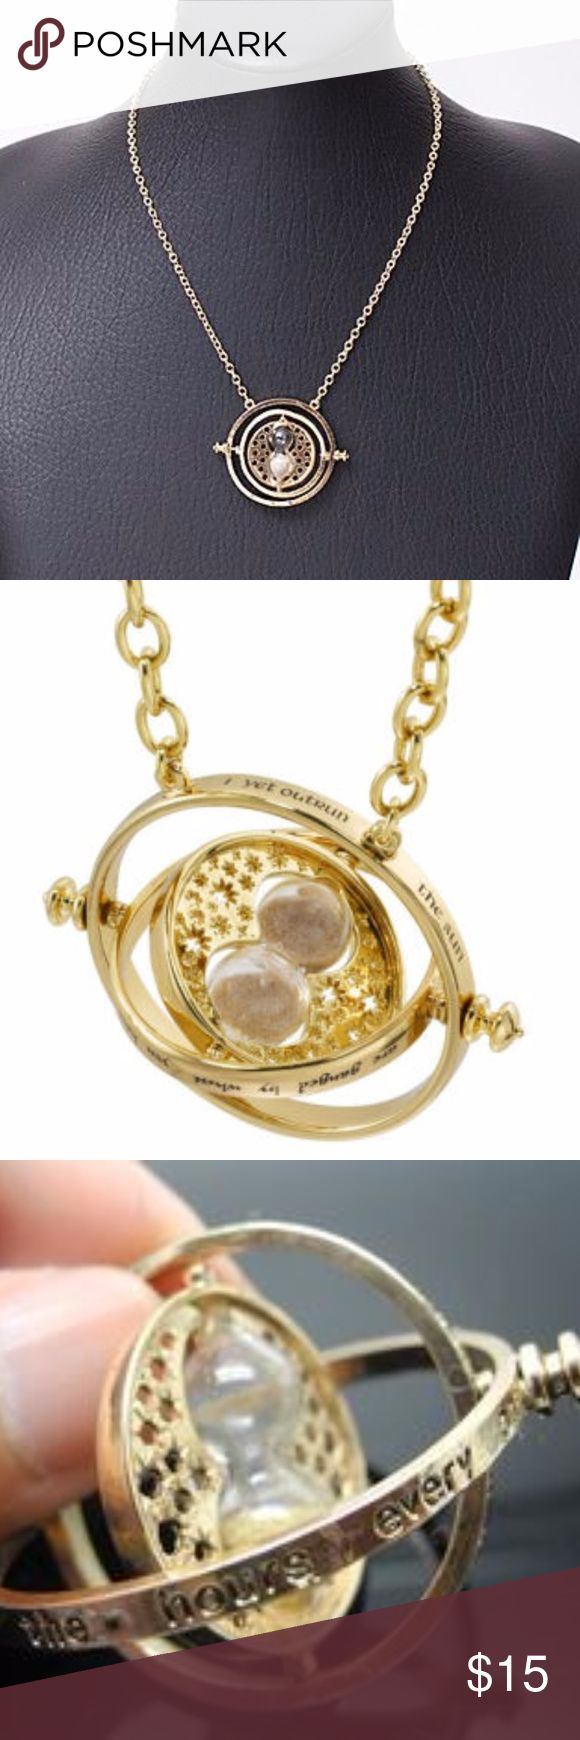 """New Harry Potter Time Turner Necklace Authentic Recreation of Hermione Granger's Time Turner Necklace.  It has a little hour glass & rotates & spins! This is a gift any true HP fan would love to own!   The time turner comes on a long 20"""" chain """" I mark the hours, every one, nor have I yet outrun the sun.  My use & value , unto you, are gauged by what you have to do"""" it is made of yellow gold-tone alloy metal & sand I cannot guarantee this will actually allow you to time travel but I can…"""